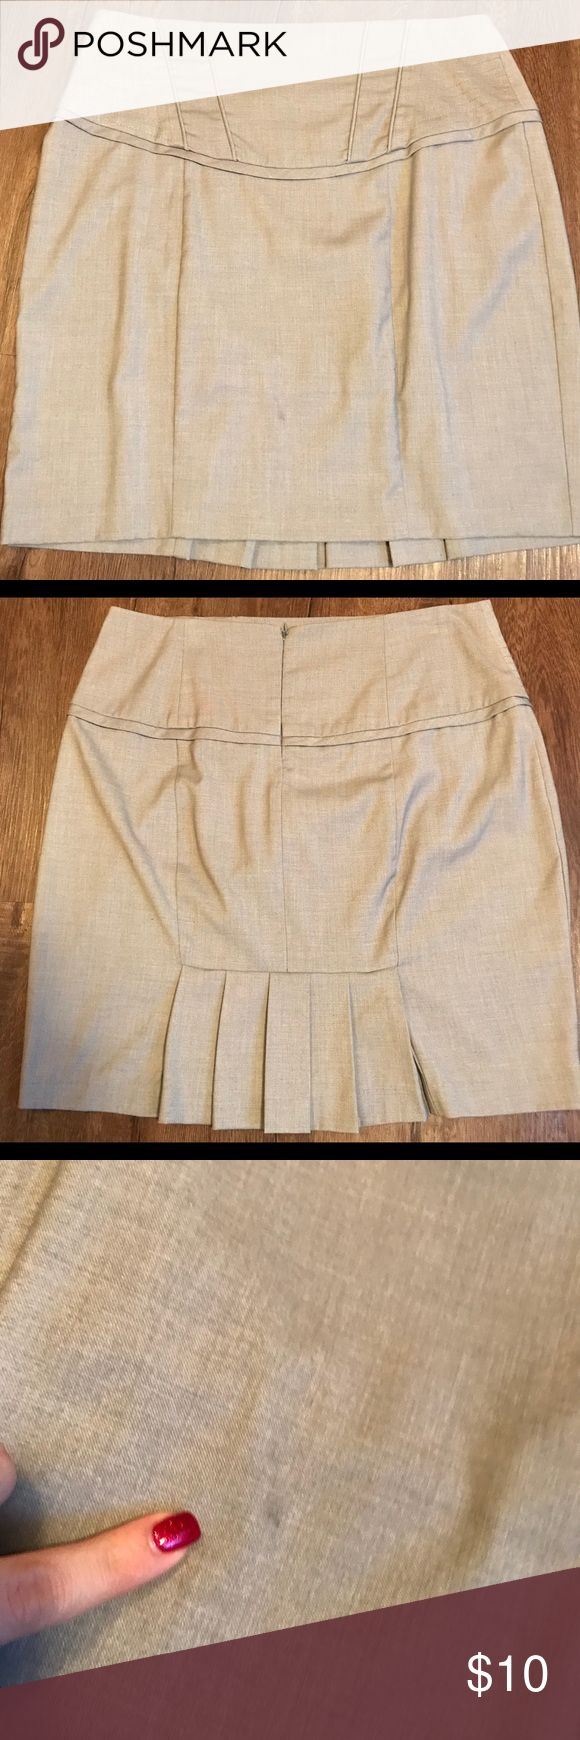 """High Waisted short Pencil Skirt Skirt has a zipper on back and a tummy control waist band. There is a small dark smudge on front of skirt barely noticeable and may be washable as shown in pictures. Back has cute pleated ruffles! Size 11/12 but fits a 10. Shoes and shirt are posted for sale separately, bundle if you'd like 😊  Waist 16"""" Length 19"""" XOXO Skirts Pencil"""